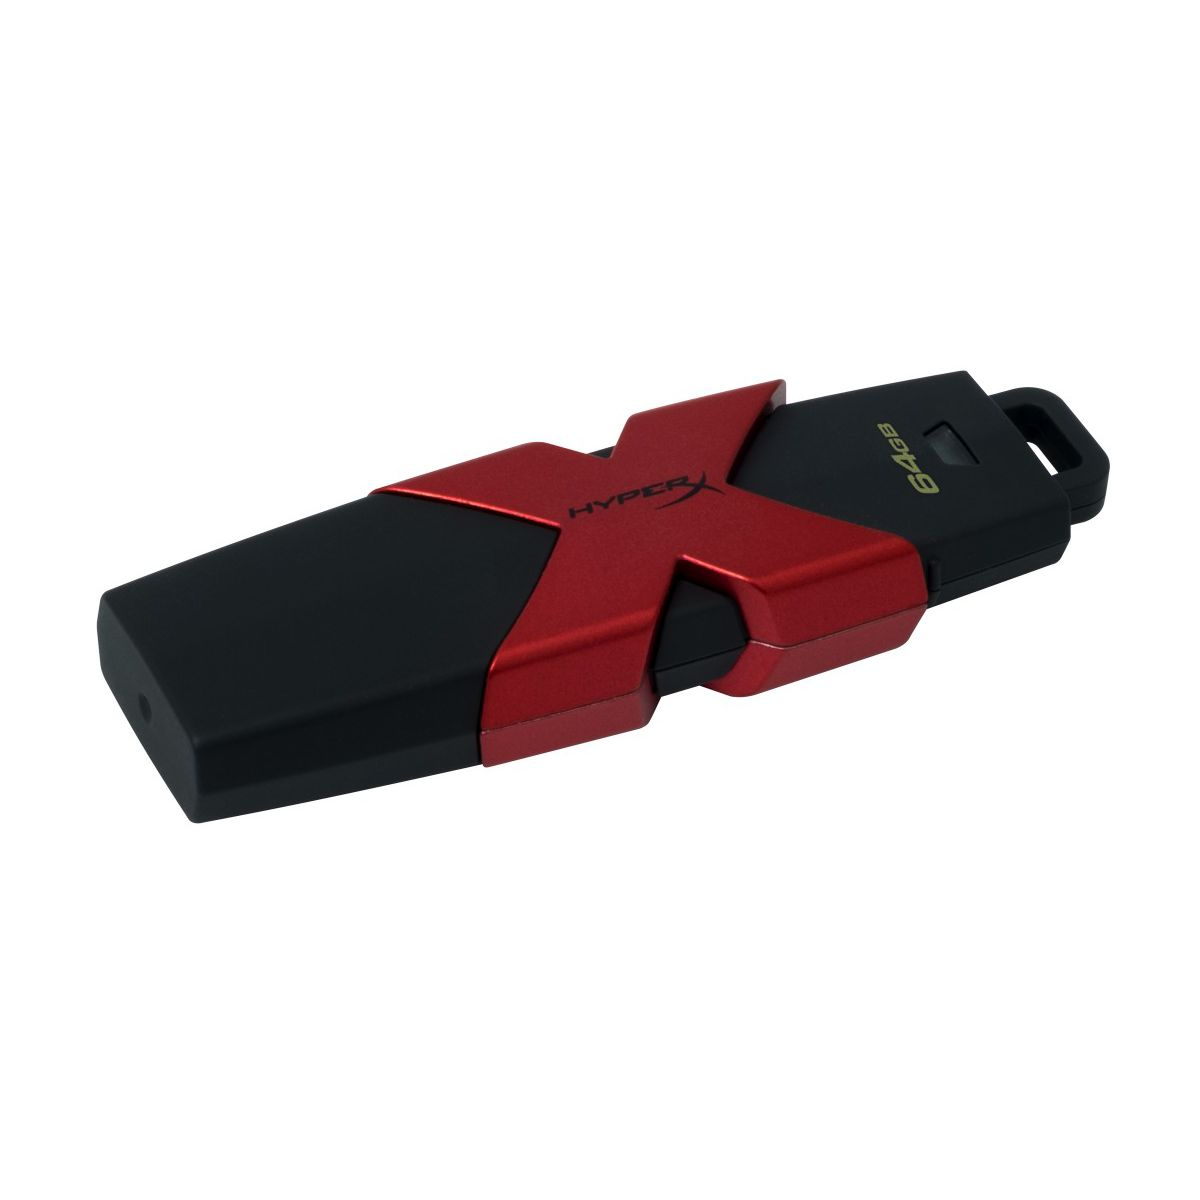 Clé USB KINGSTON 64Go HYPER X Savage USB 3.1 Gen 1 (photo)